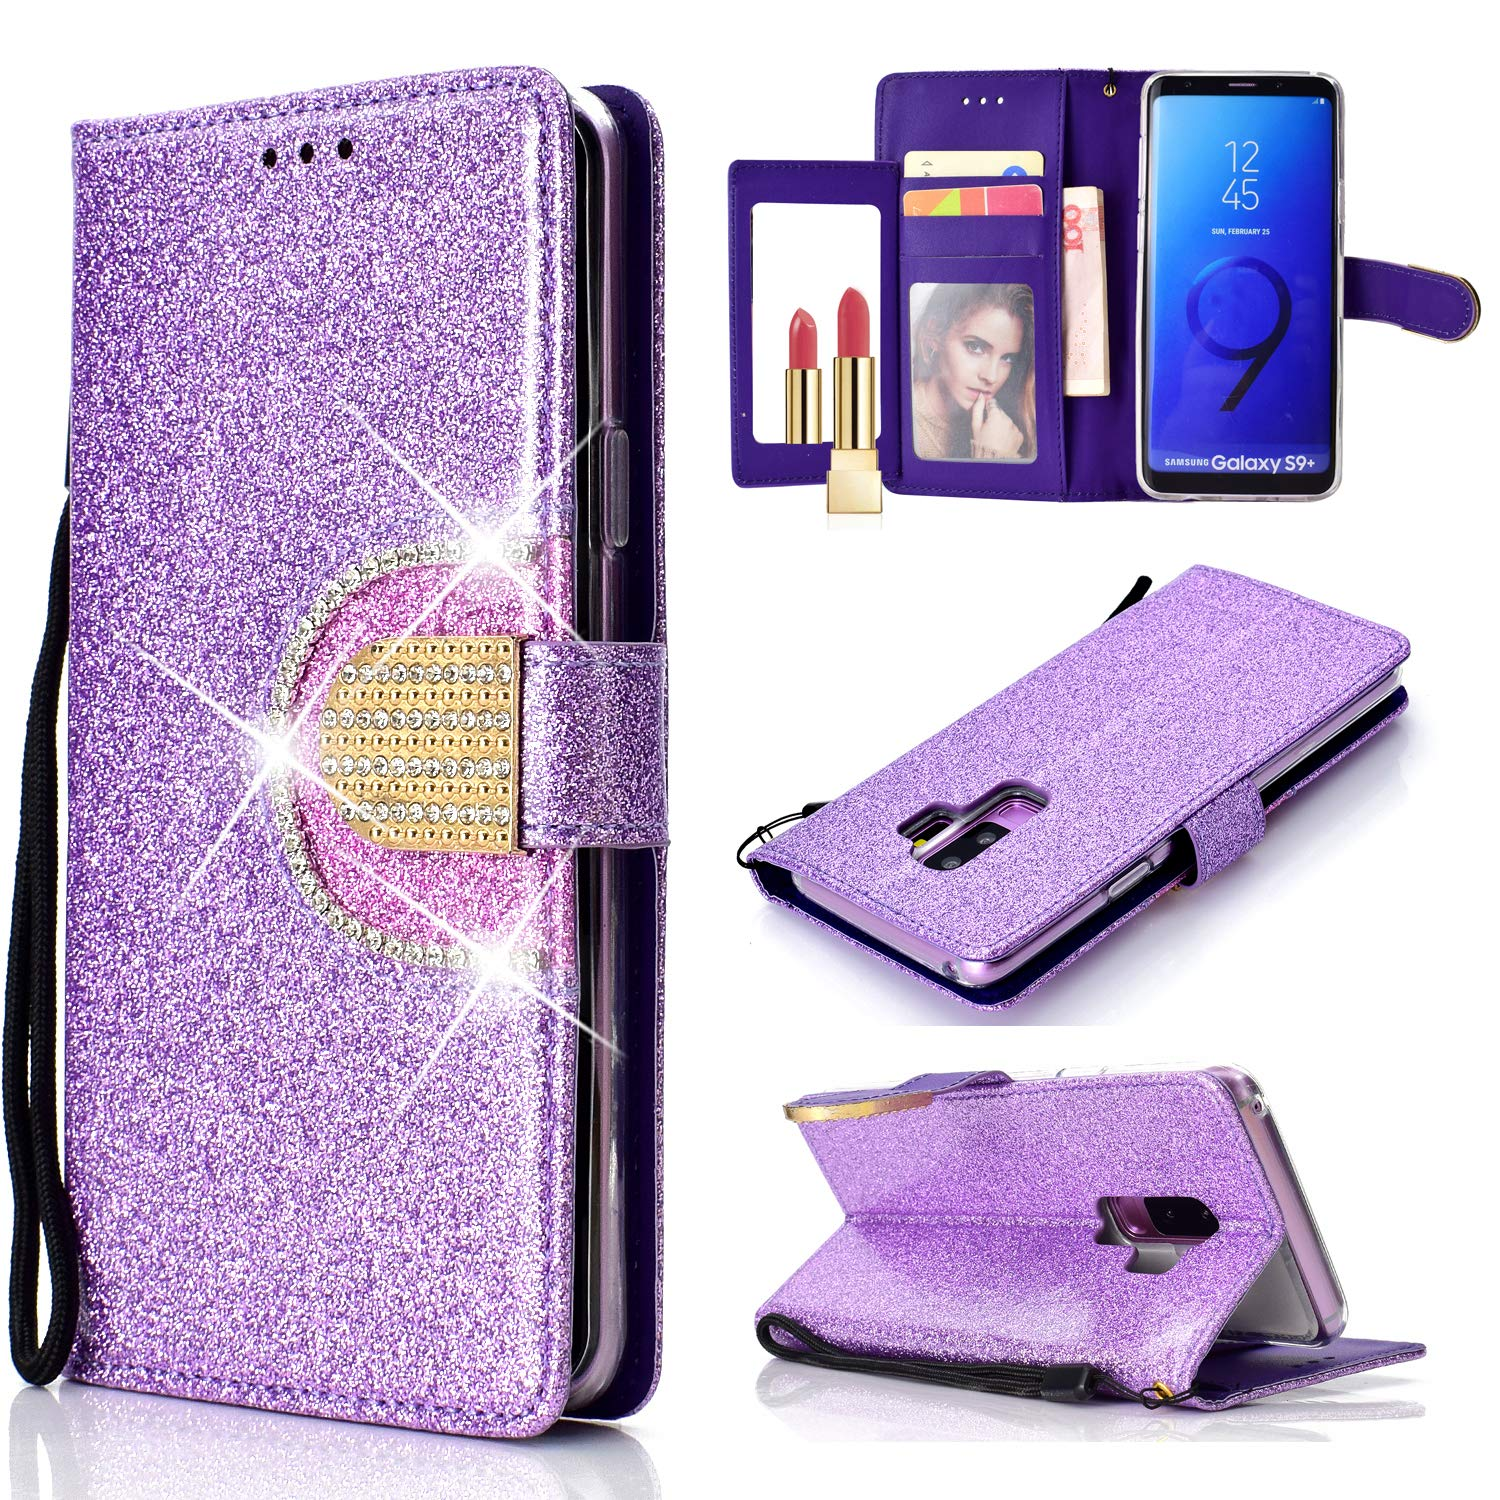 for Samsung Galaxy S9 Plus Wallet Case and Screen Protector, Samsung Galaxy S9 Plus Leather Phone Cases with Card Holder and Mirror, QFFUN Glitter Diamond Magnetic Closure Stand Function Shockproof Anti-Scratch Drop Protection Etui Shell Bumper Protective